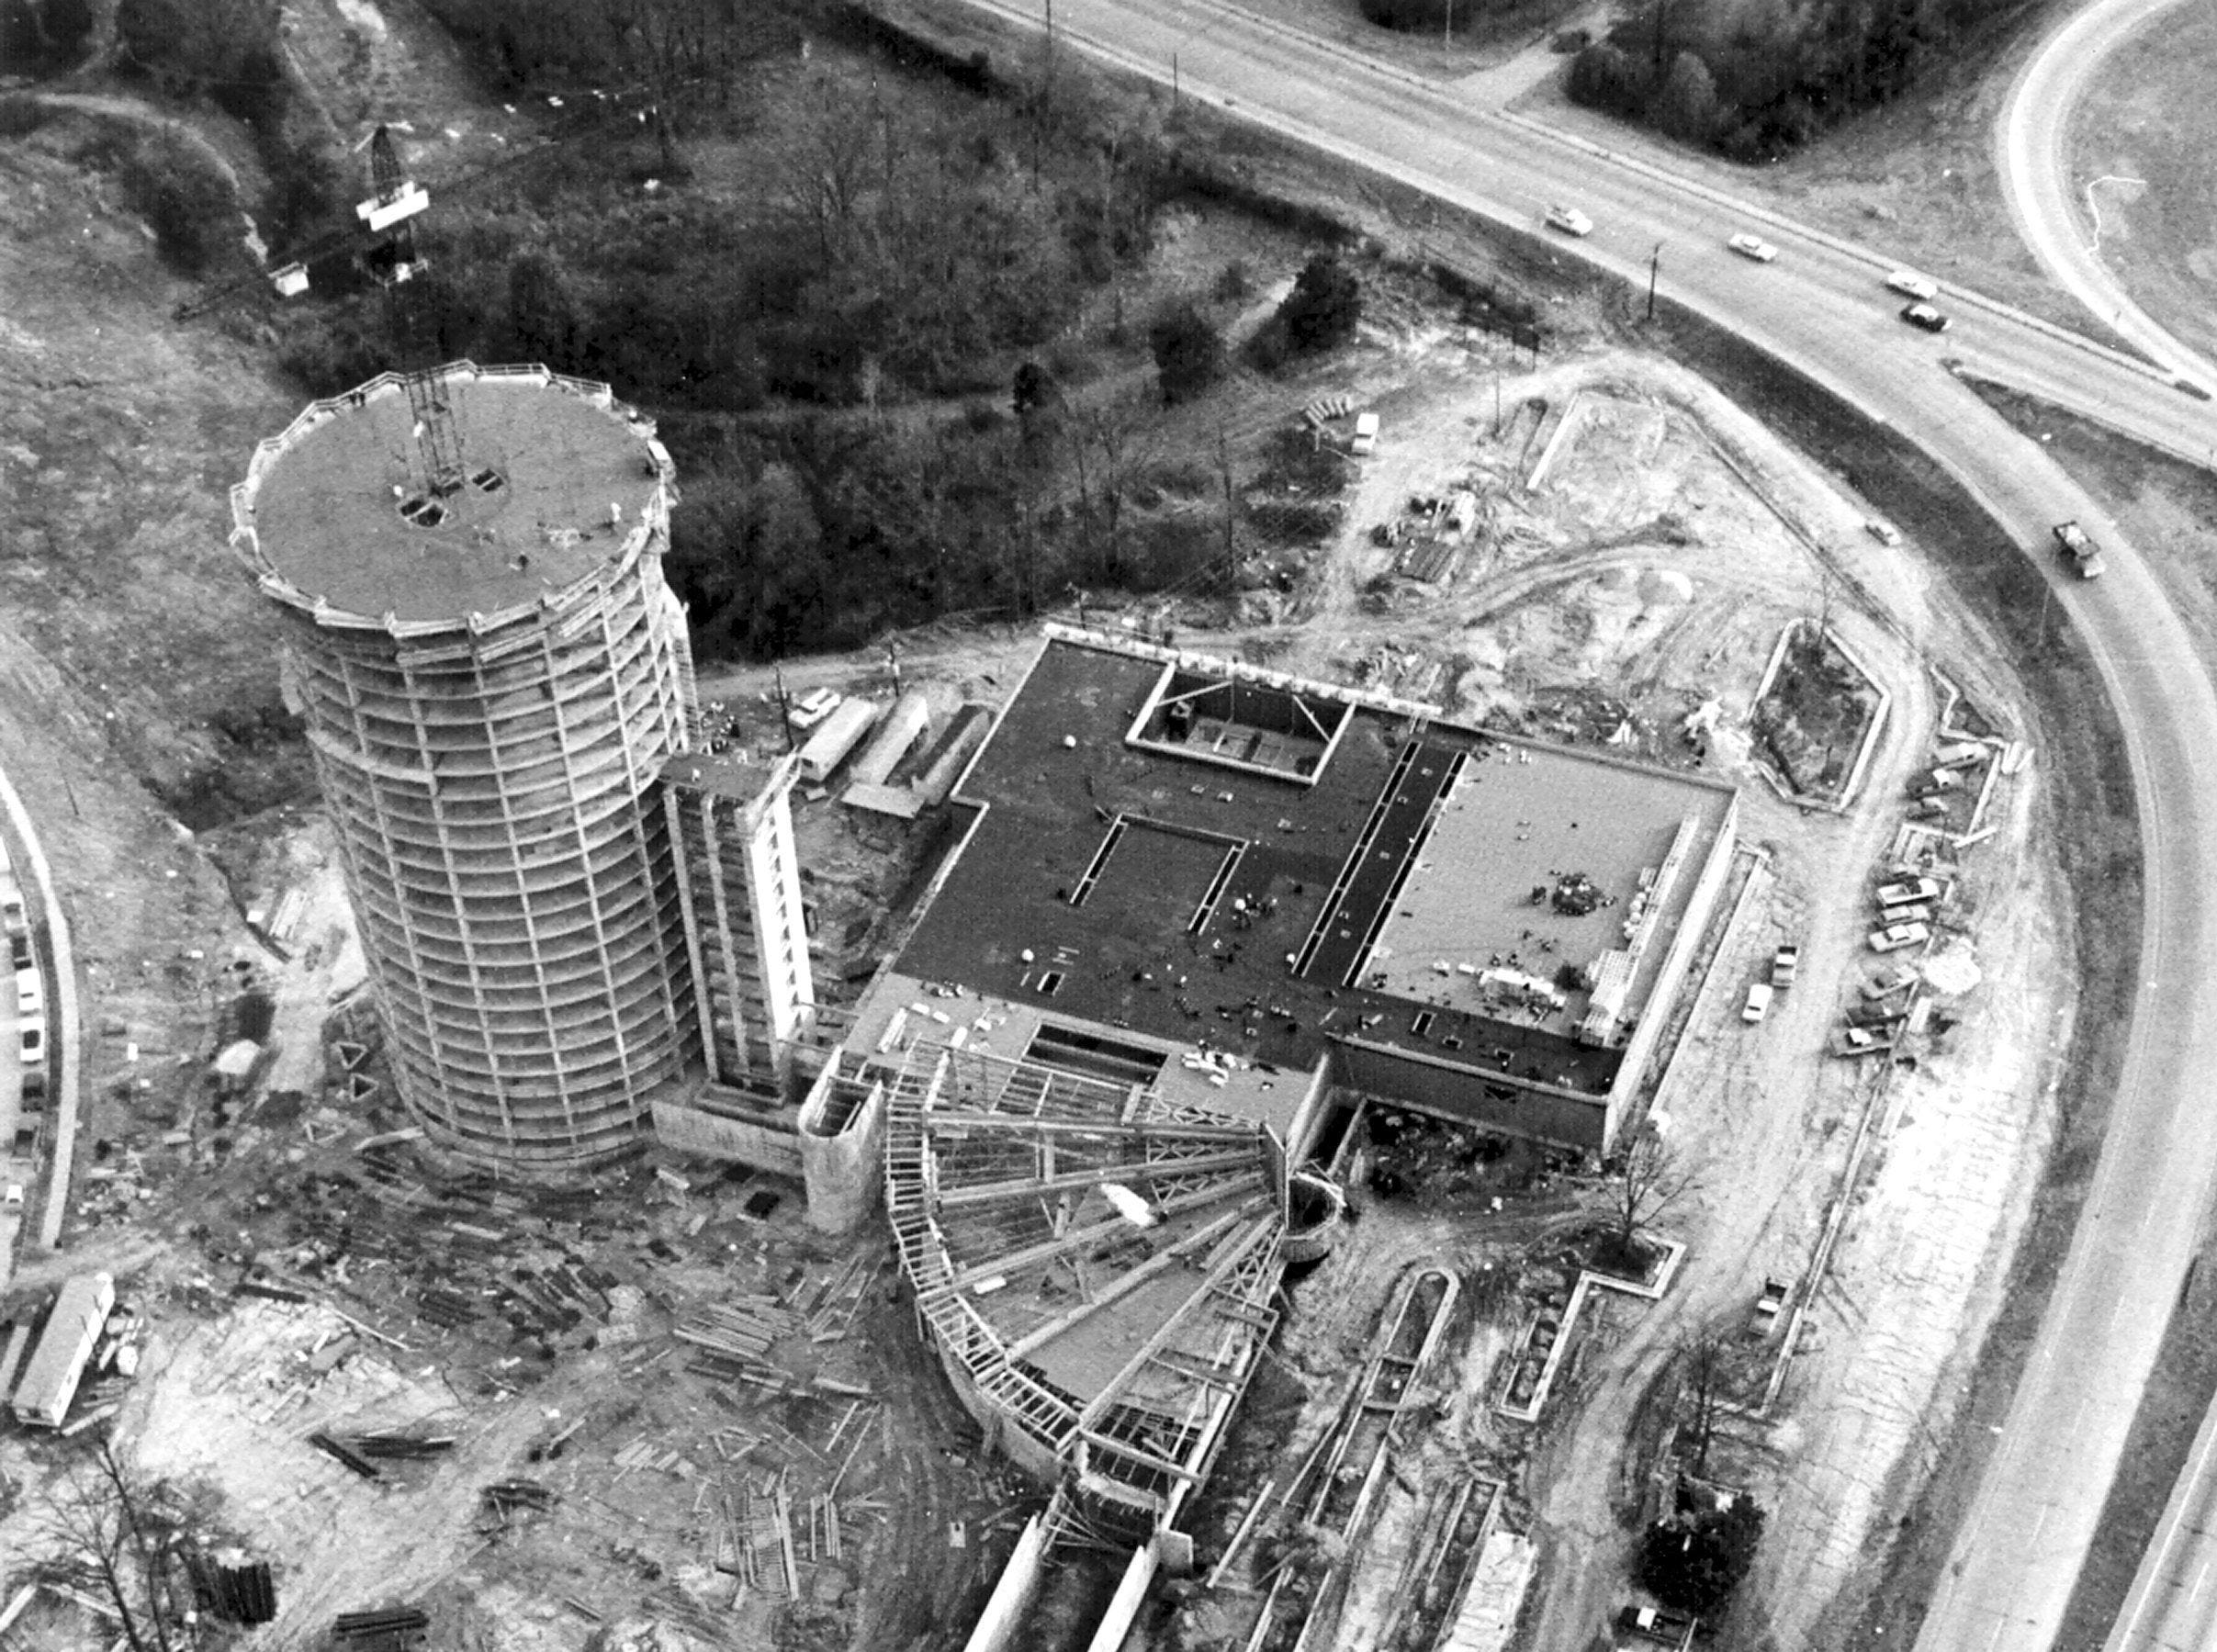 Construction of the Hyatt Regency Hotel at Poplar and I-240 progresses as seen in this 10 Dec 1974 aerial view of the building. The 26-story hotel, owned by Boyle Investment Co., is scheduled to be completed in late 1975. The construction cost is about $15 million and the hotel is expected to provide jobs for 400 persons. It will have four exterior elevators.  Dave Darnell/The Commercial Appeal Construction of the Hyatt Regency Hotel at Poplar and I-240 progresses as seen in this 10 Dec 1974 aerial view of the building. The 26-story hotel, owned by Boyle Investment Co., is scheduled to be completed in late 1975. The construction cost is about $15 million and the hotel is expected to provide jobs for 400 persons. It will have four exterior elevators.